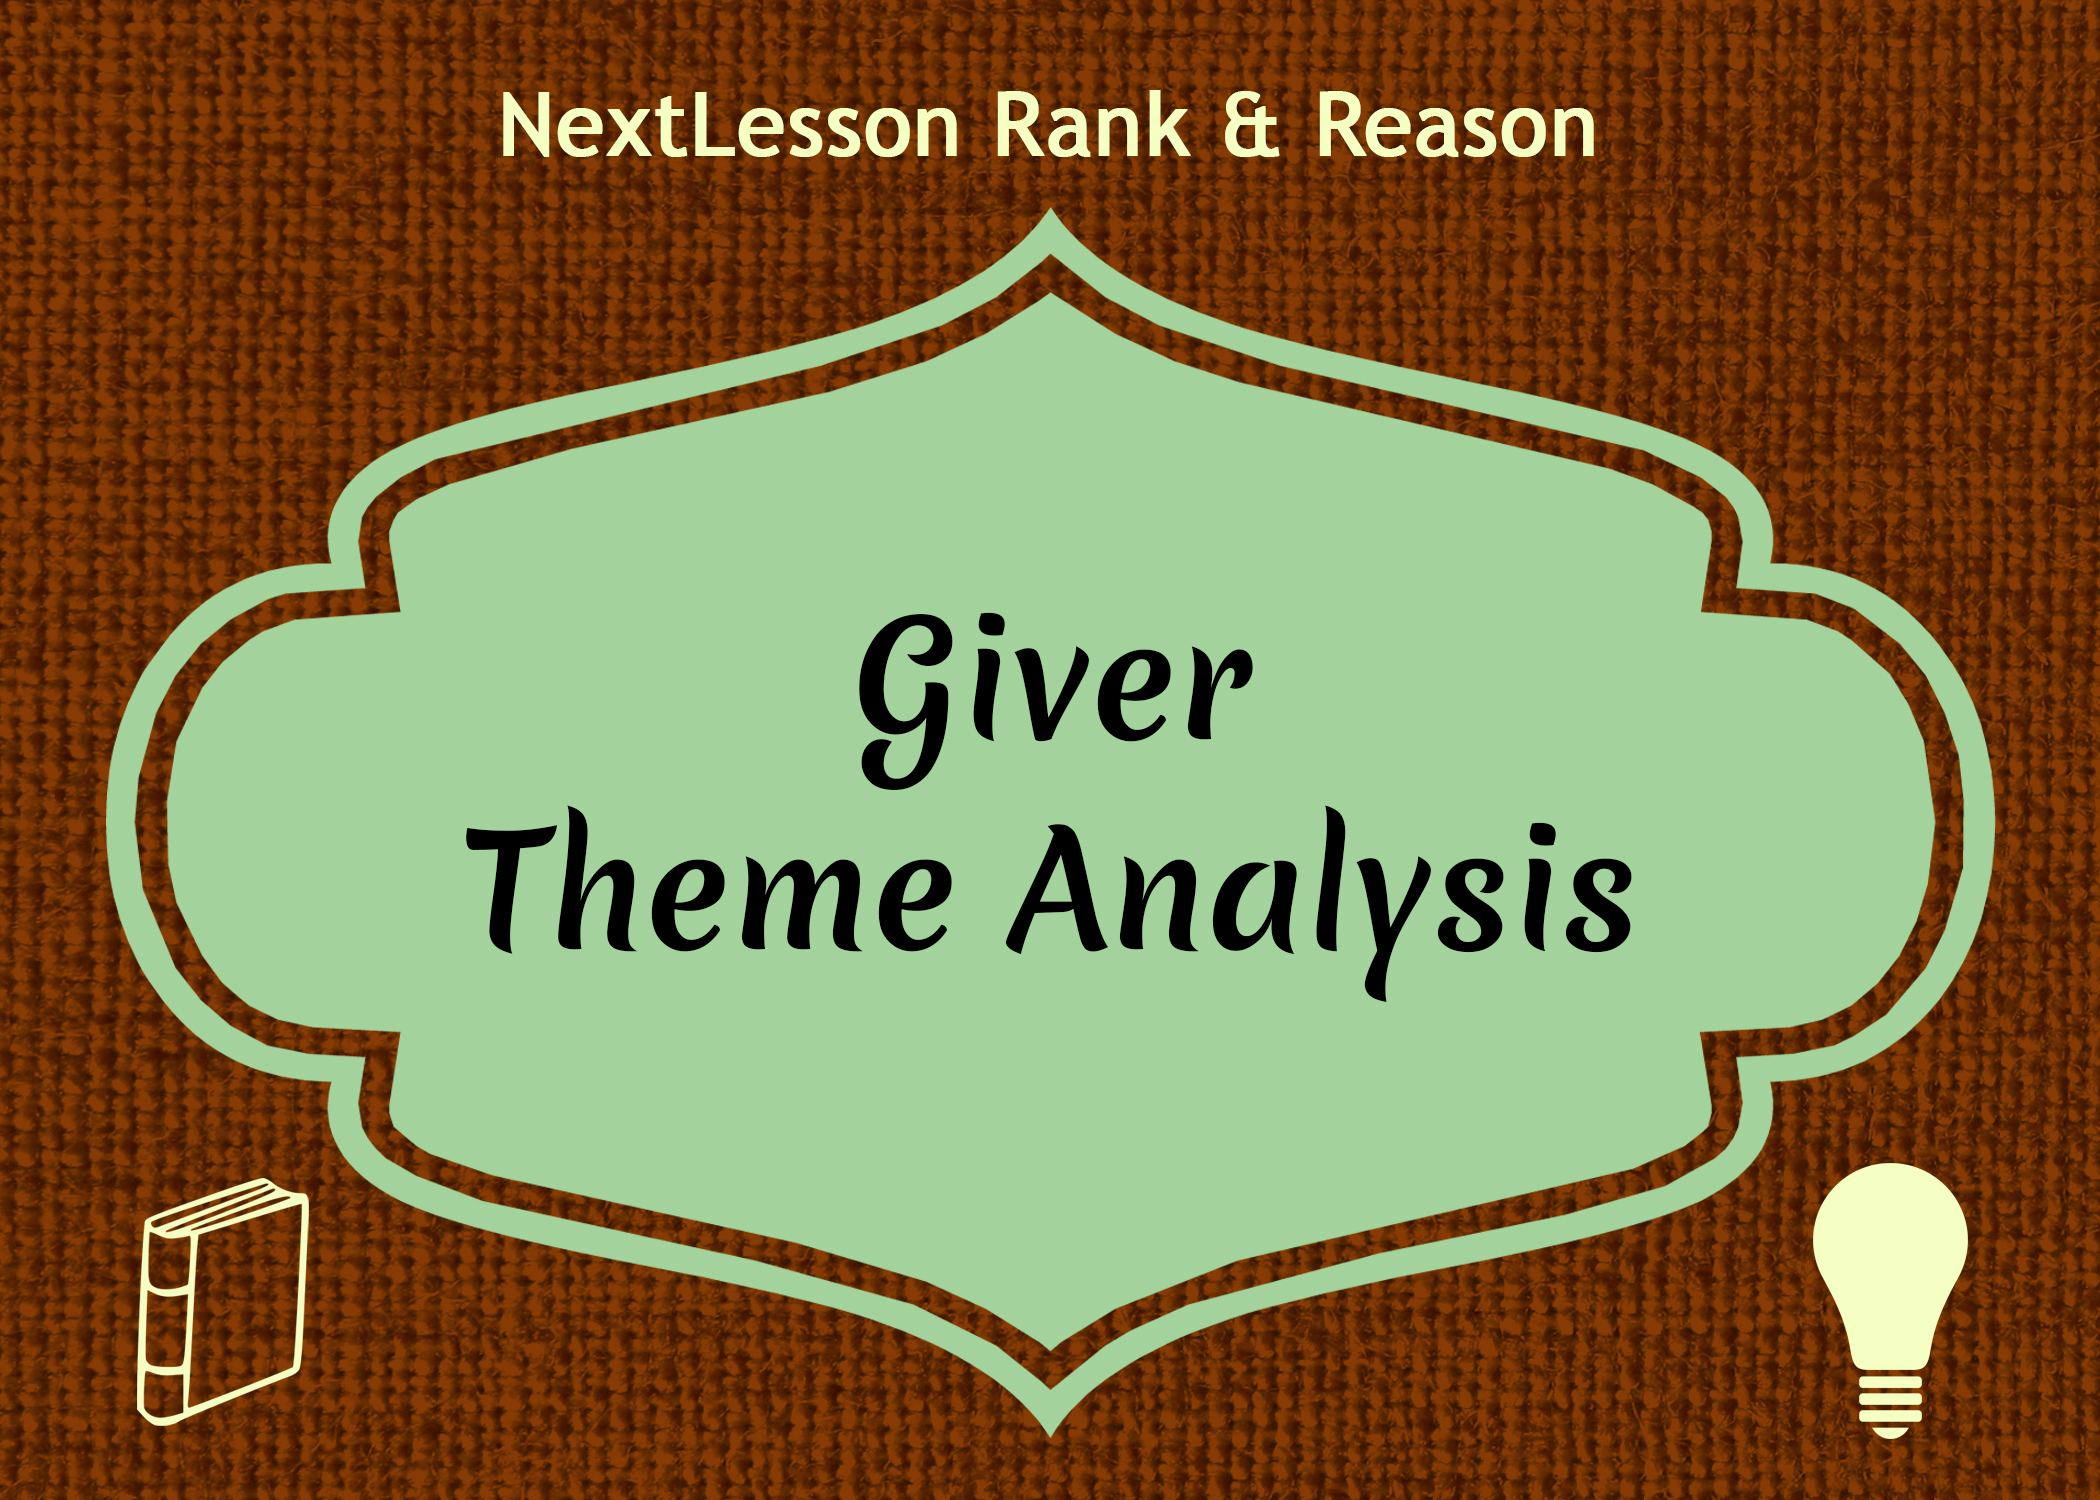 an analysis of the theme of the giver The giver analysis the main theme shown in the giver is the idea that good cannot exist without evil, and evil cannot exist without good, thus making reaching a perfect society impossible.